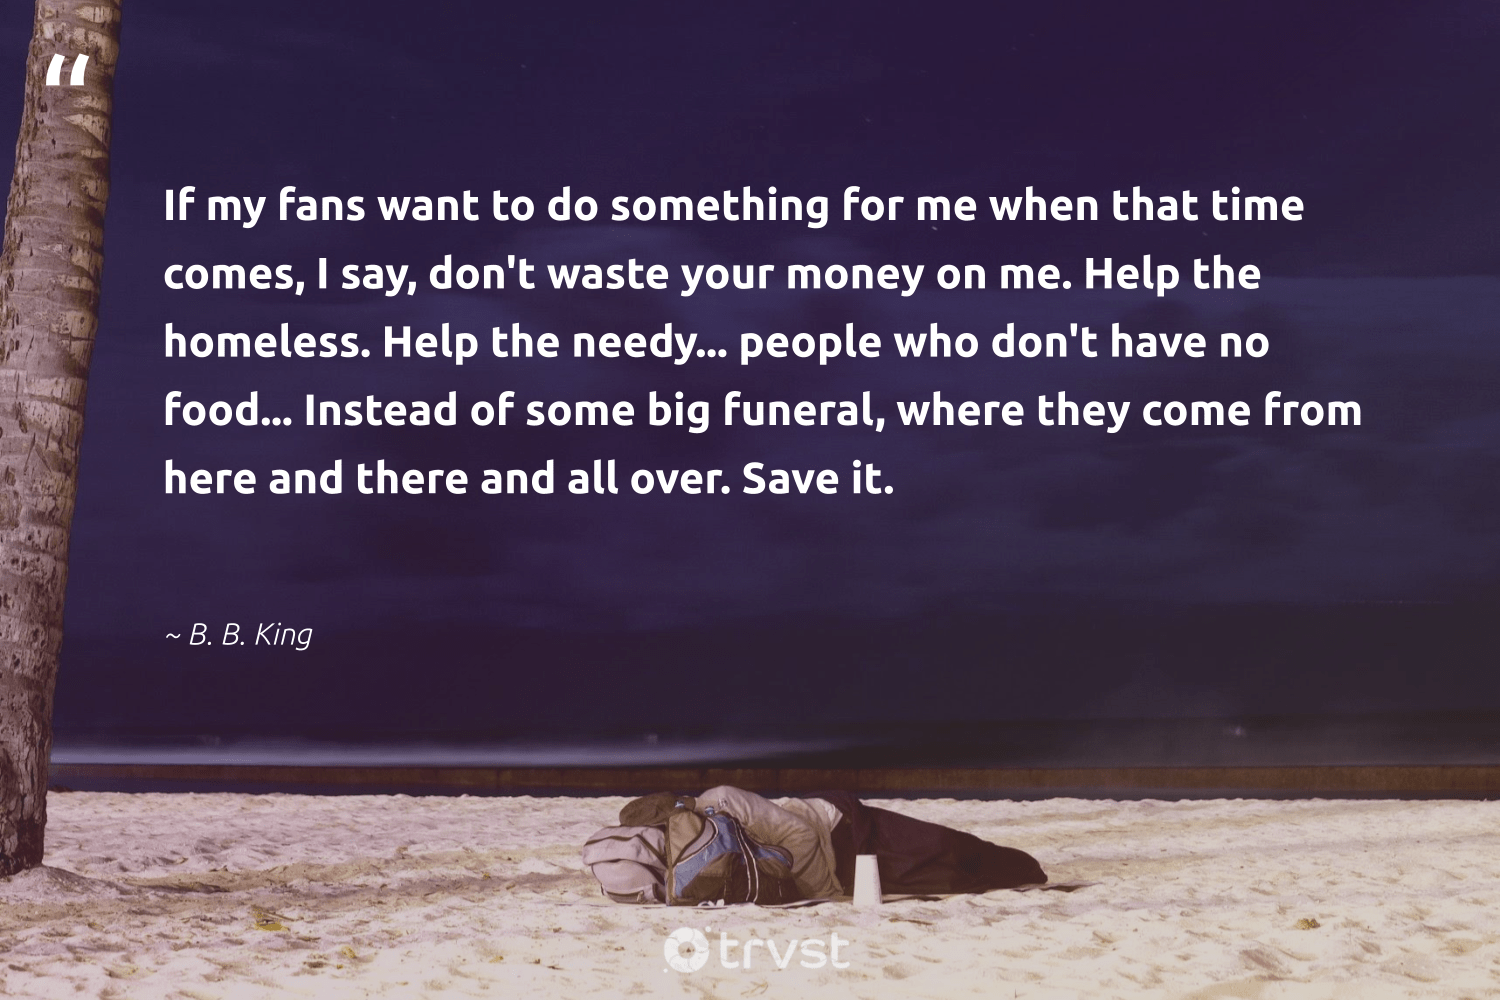 """""""If my fans want to do something for me when that time comes, I say, don't waste your money on me. Help the homeless. Help the needy... people who don't have no food... Instead of some big funeral, where they come from here and there and all over. Save it.""""  - B. B. King #trvst #quotes #homelessness #dosomething #waste #homeless #food #inclusion #weareallone #dotherightthing #makeadifference #equalopportunity"""